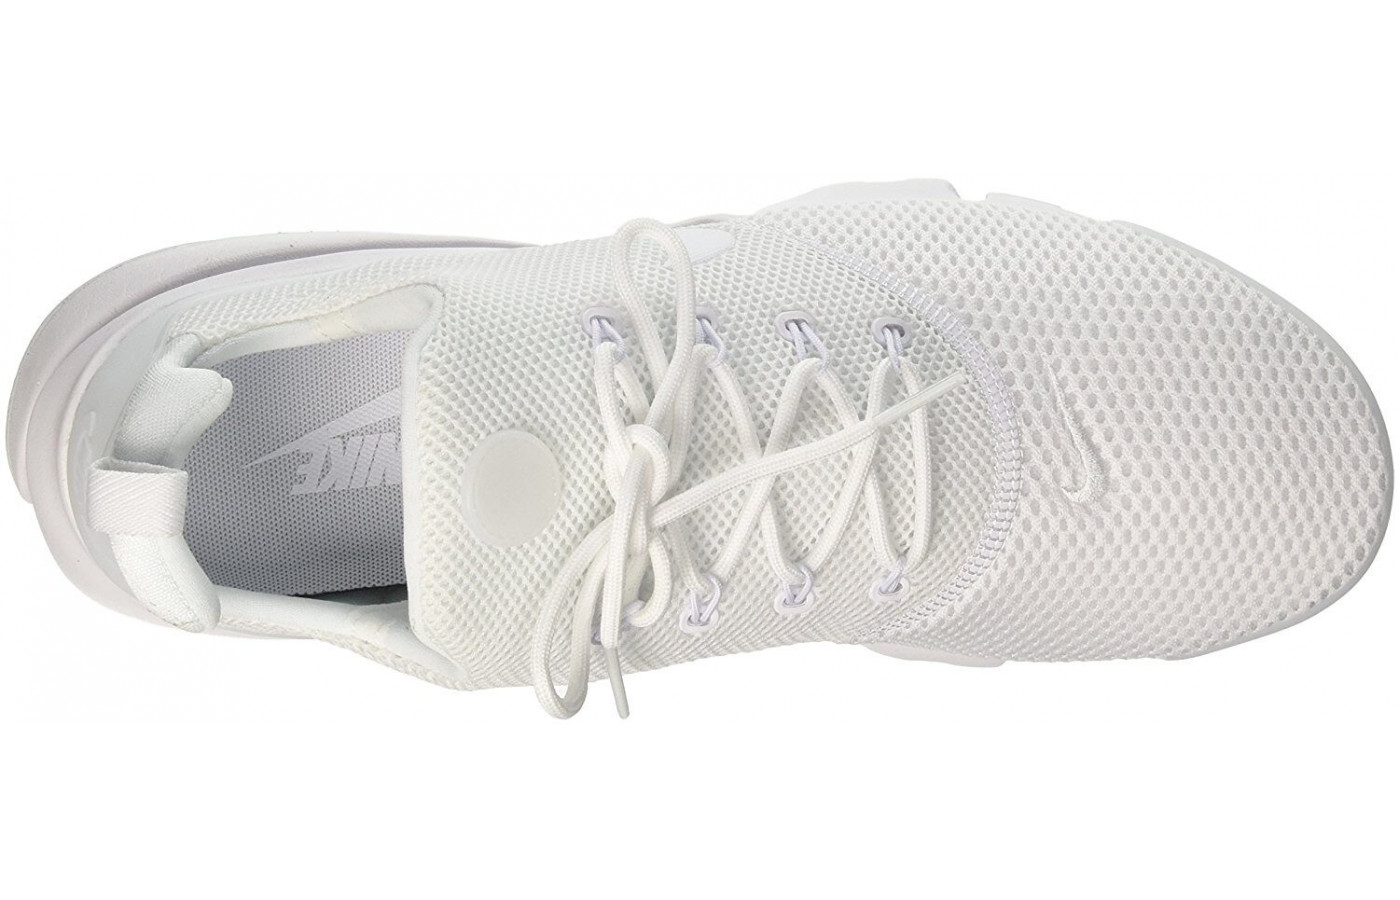 The breathable upper features a stretchy mesh.